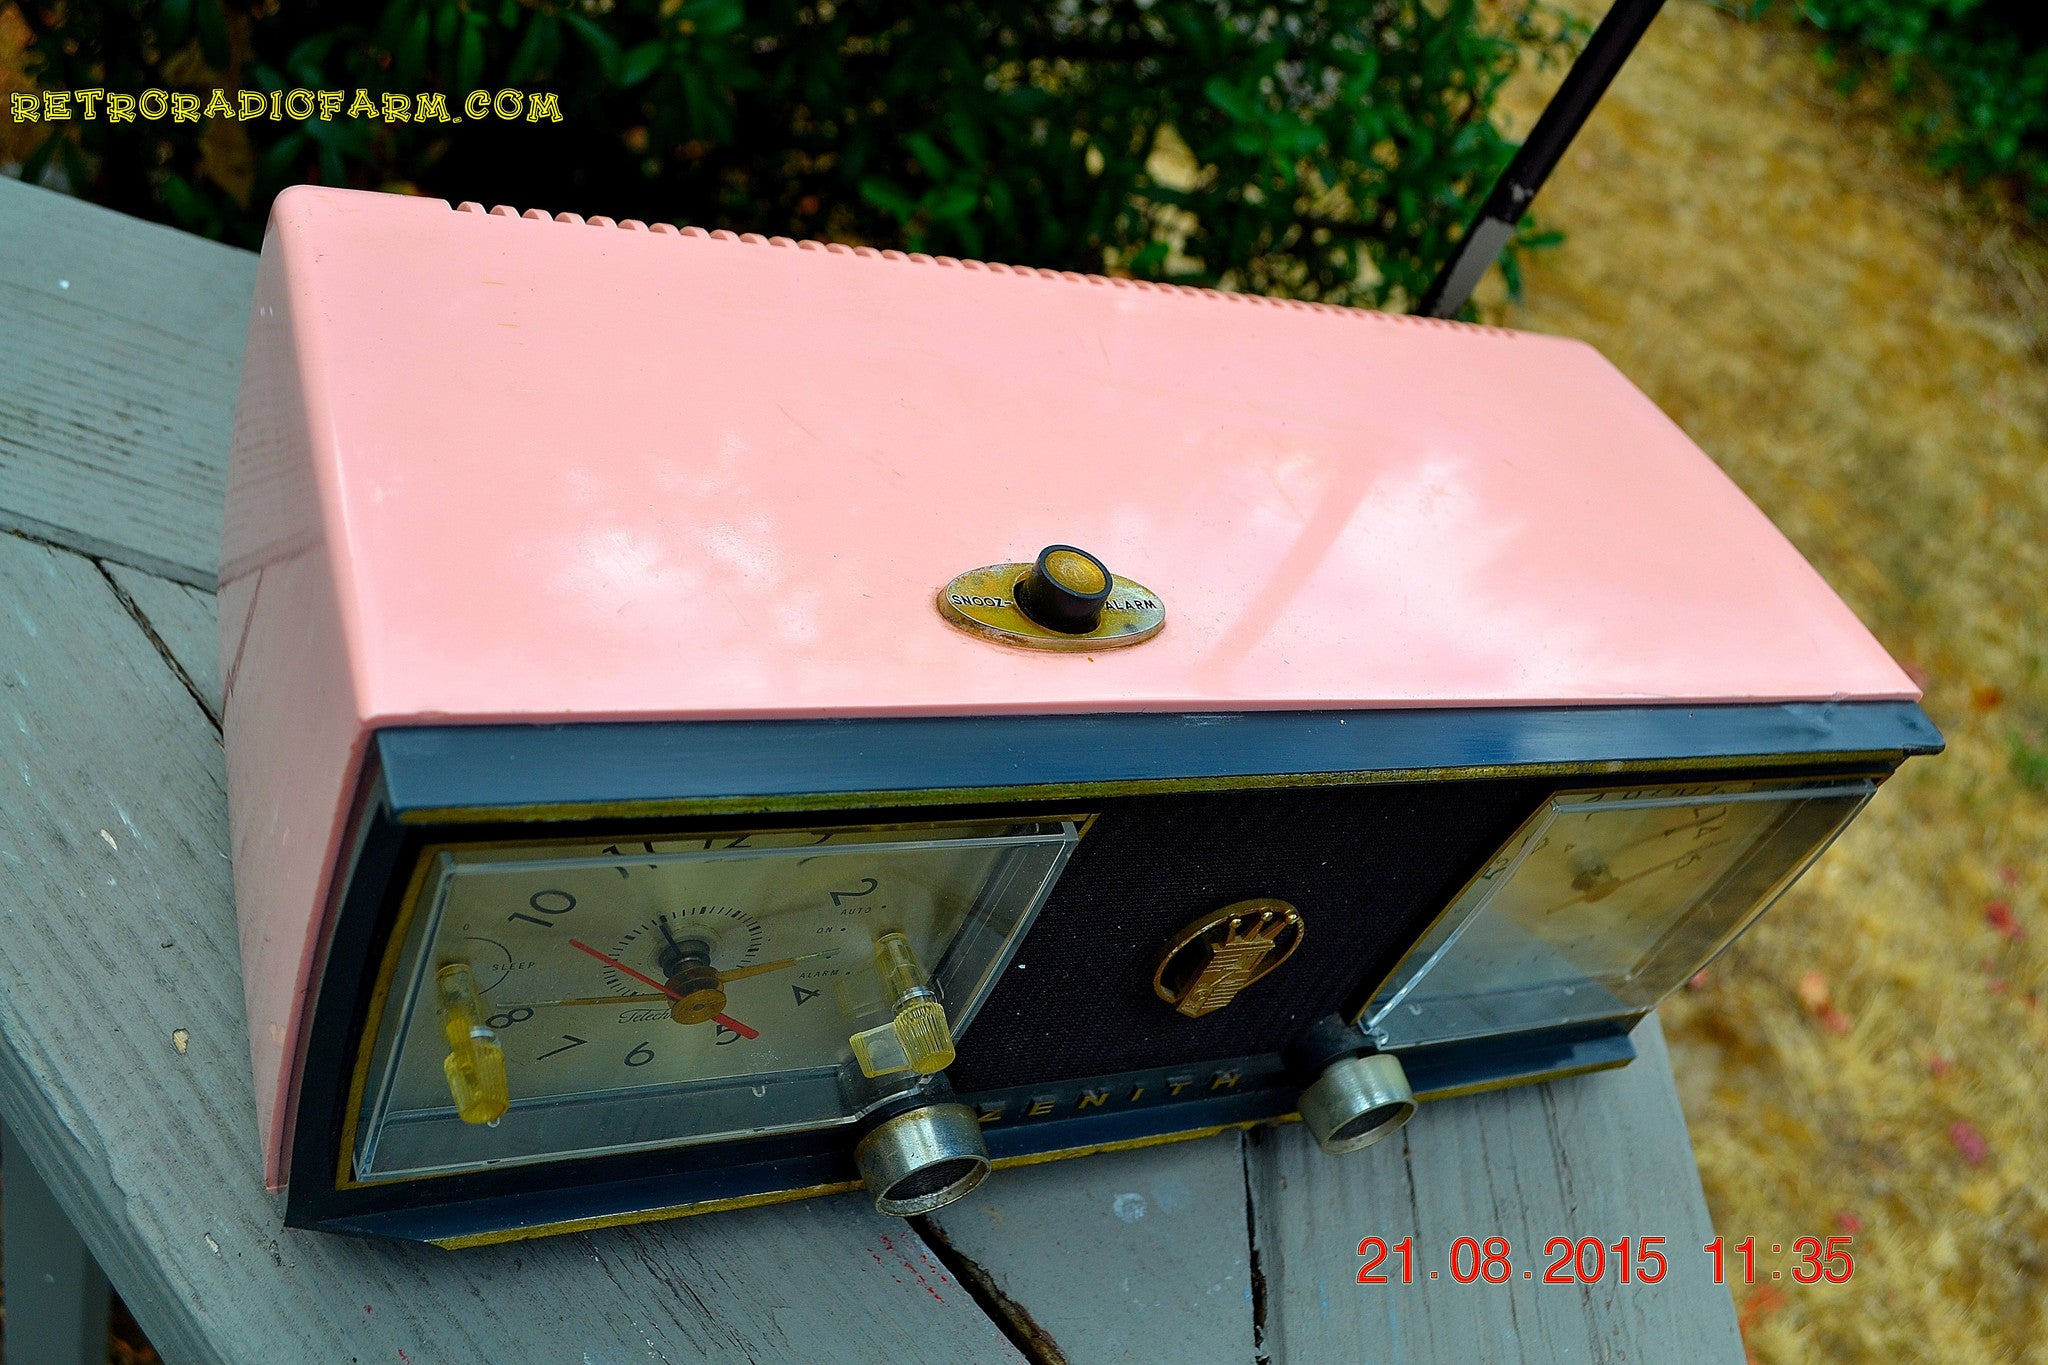 SOLD! - Dec 16, 2015 - BETTY BOOP Pink and Black Mid Century Retro Jetsons Vintage 1954 Zenith C624 AM Tube Radio Works! - [product_type} - Zenith - Retro Radio Farm